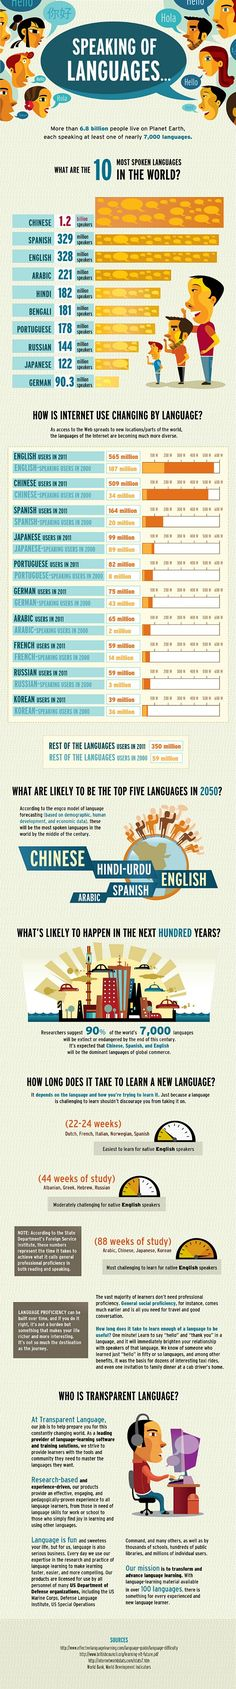 Educational infographic & data visualisation Speaking of Languages Infographic Description Learning spanish, World languages, Learning languages, Learn A New Language, Second Language, Spanish Language, Foreign Language, Spanish Classroom, Teaching Spanish, Teaching English, Learn Spanish, Study Spanish